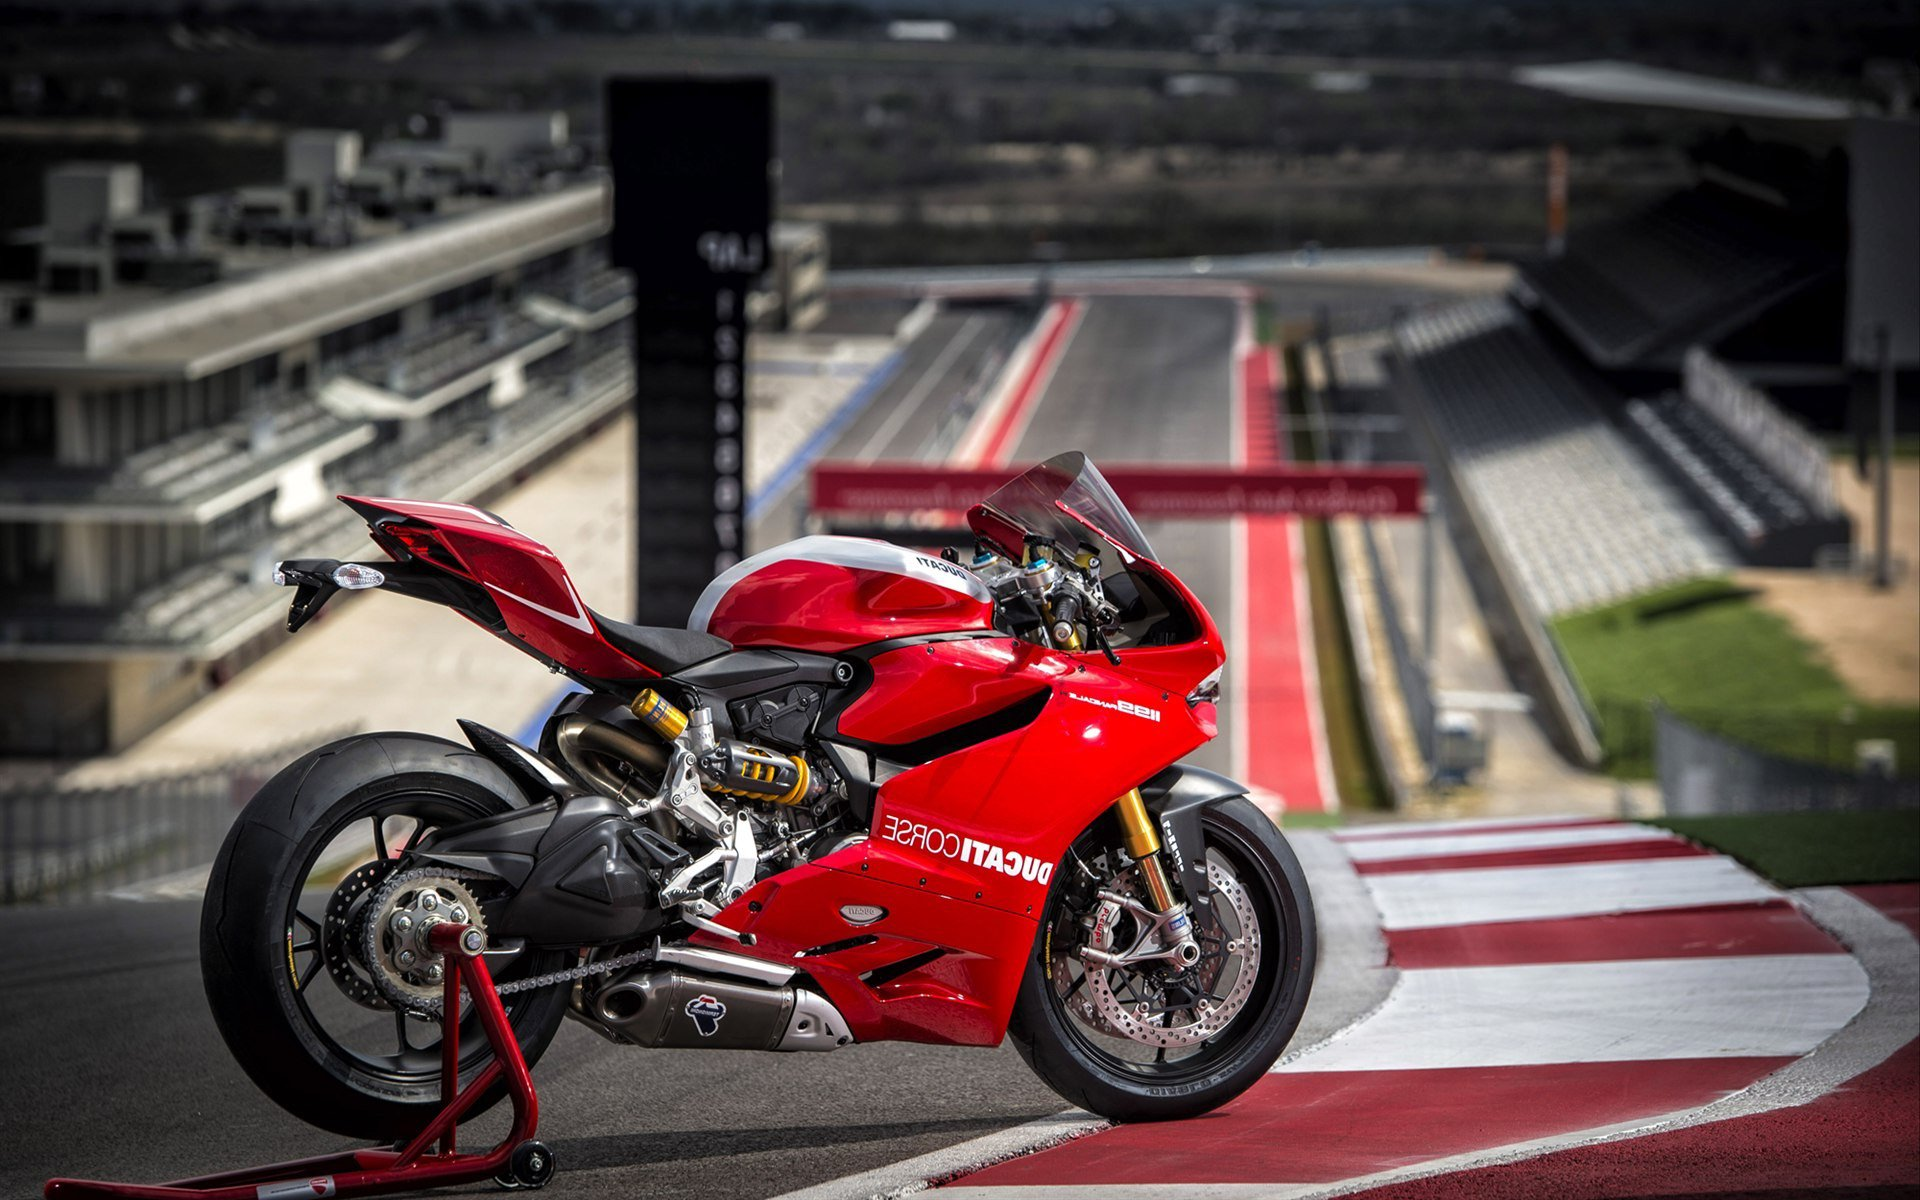 ducati superbike 1199, hd bikes, 4k wallpapers, images, backgrounds